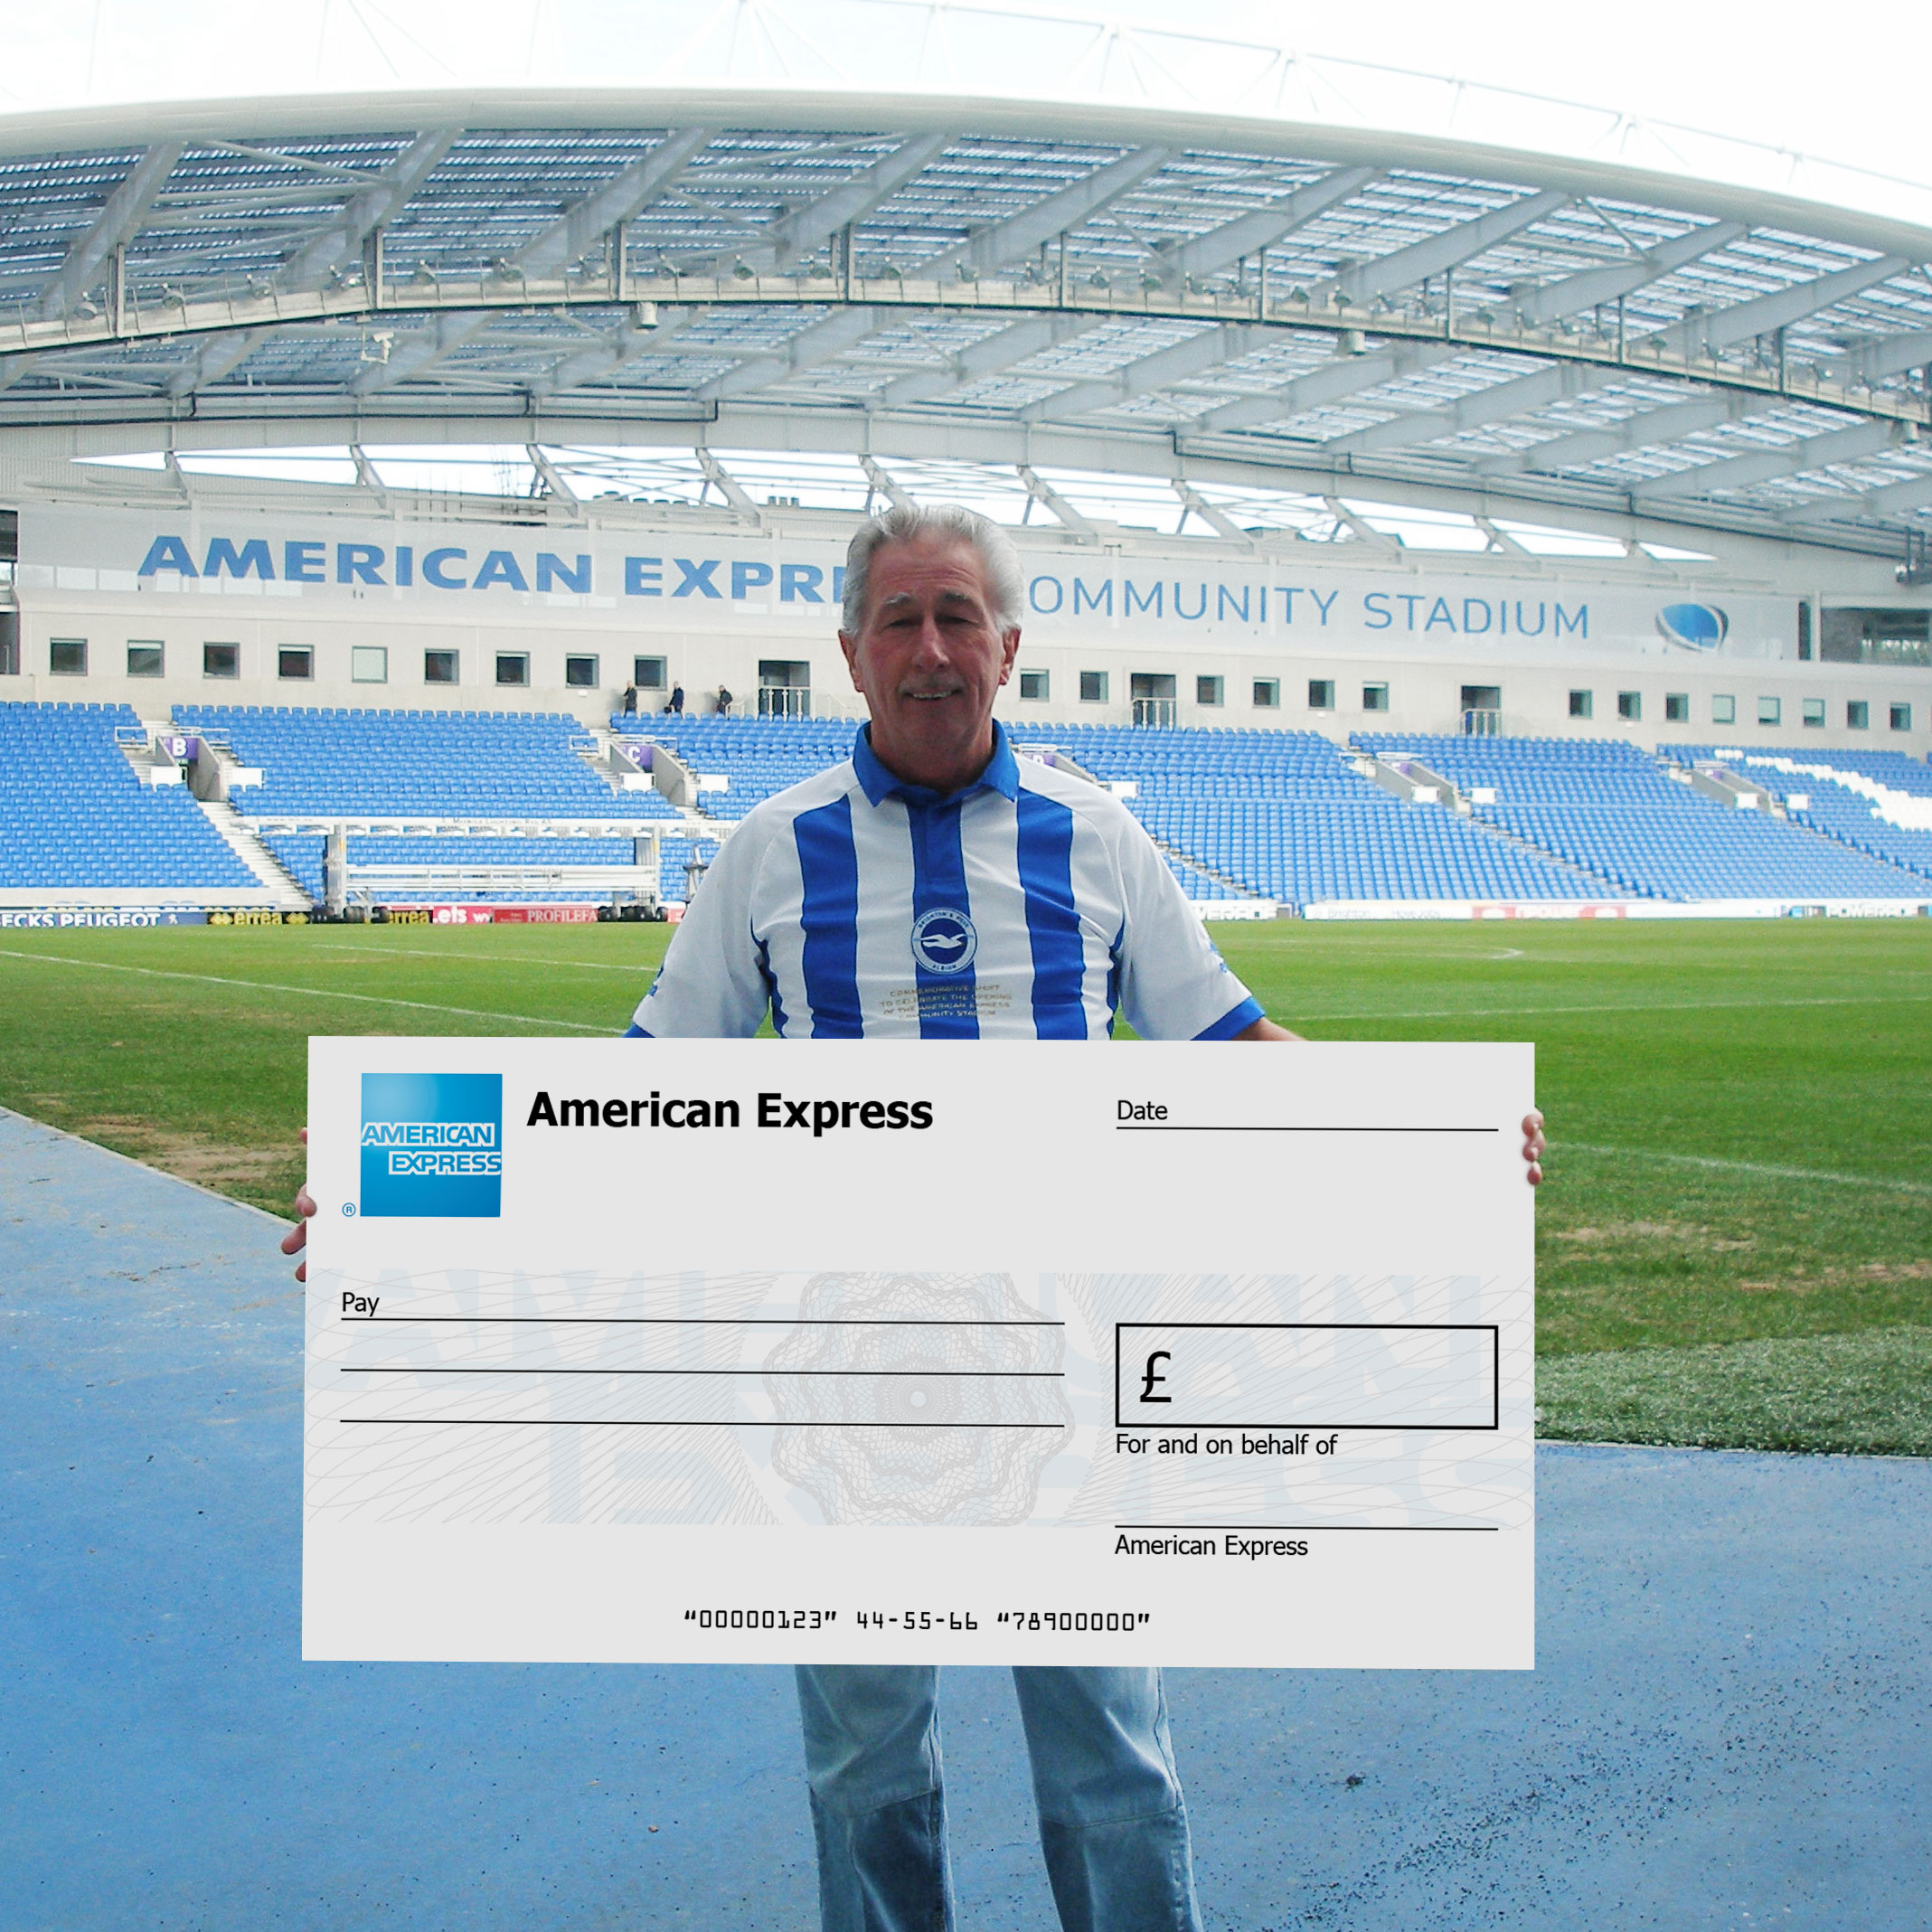 American Express Cheque